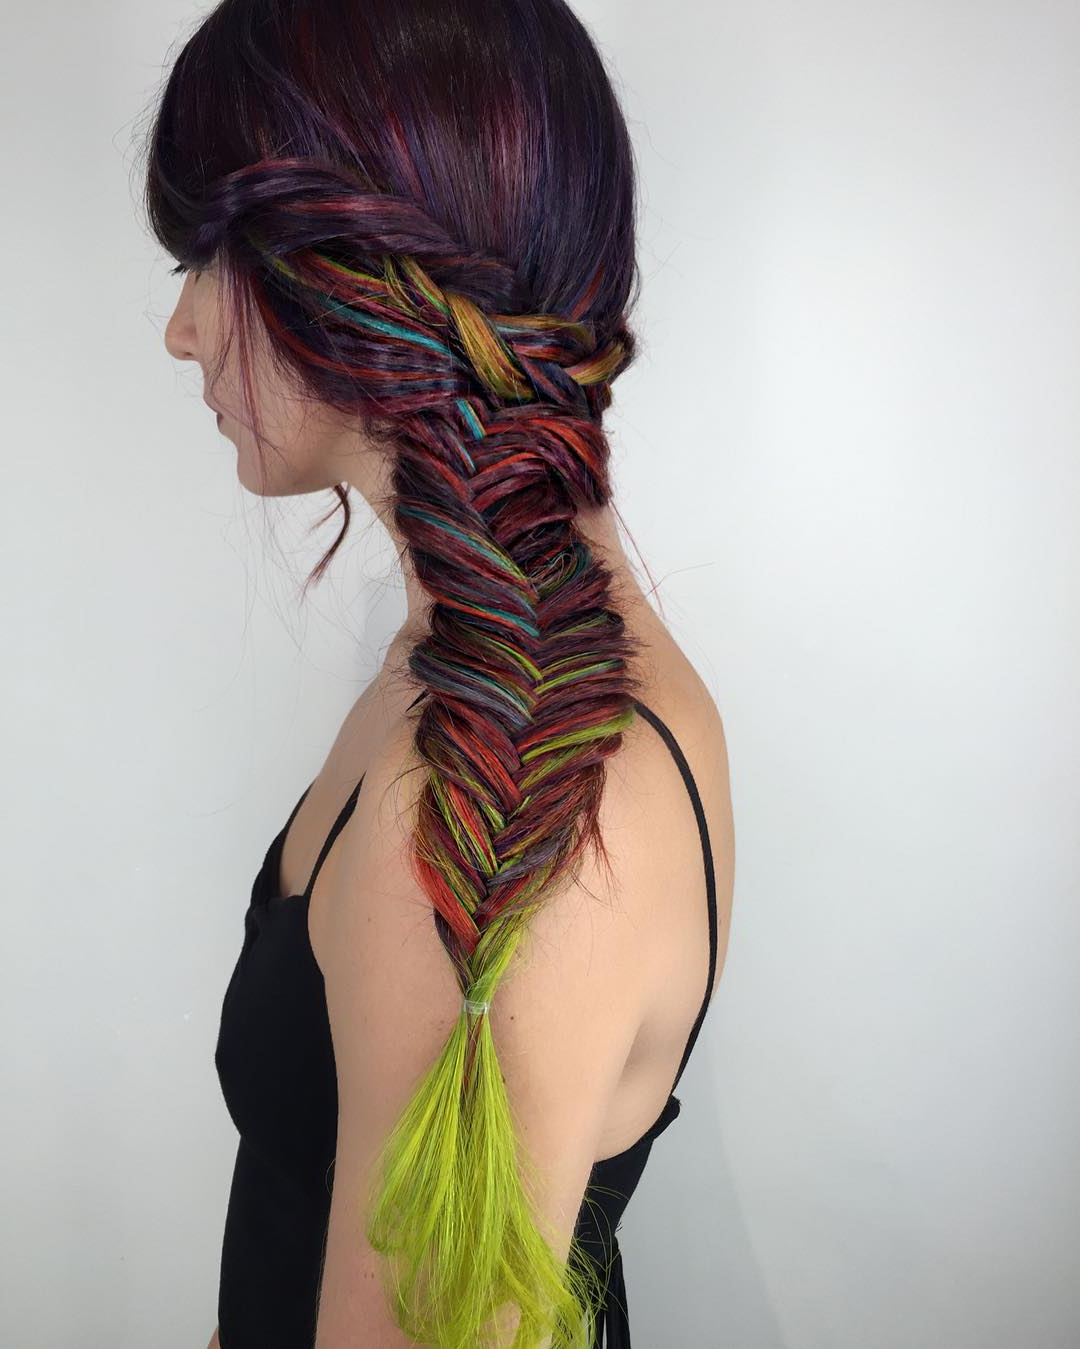 Popular Wrapping Fishtail Braided Hairstyles Intended For 25 Cute Fishtail Braid Hairstyles: Secrets Of Braiding Revealed (View 14 of 20)